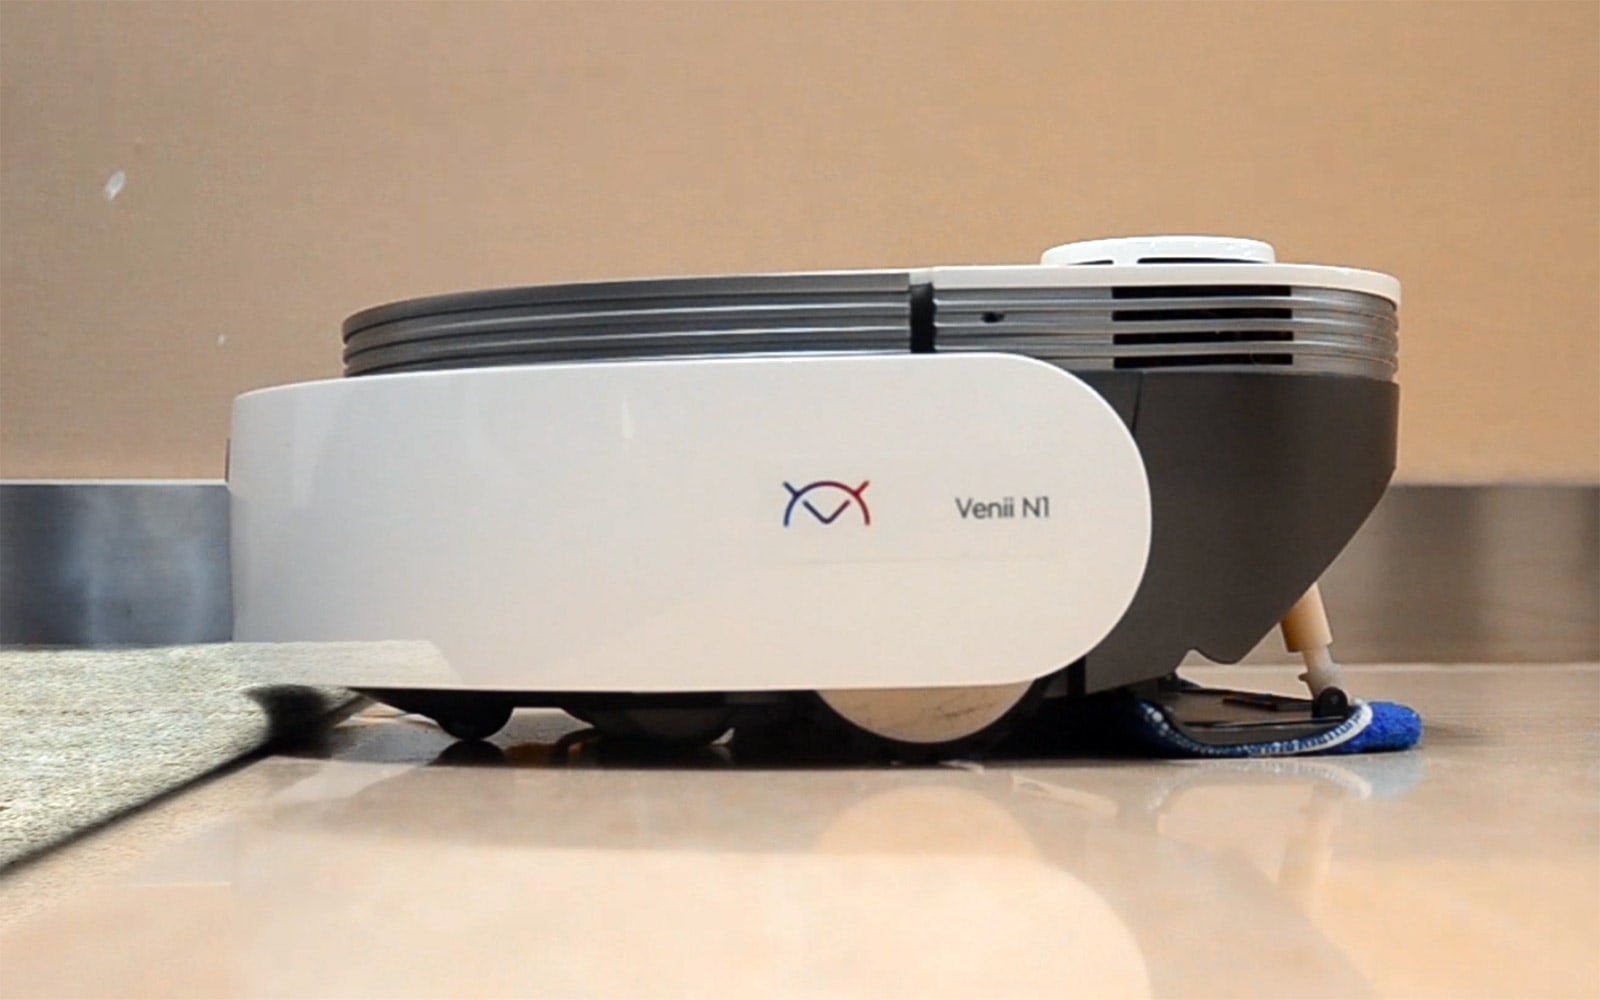 Venii N1 mopping and sweeping robot